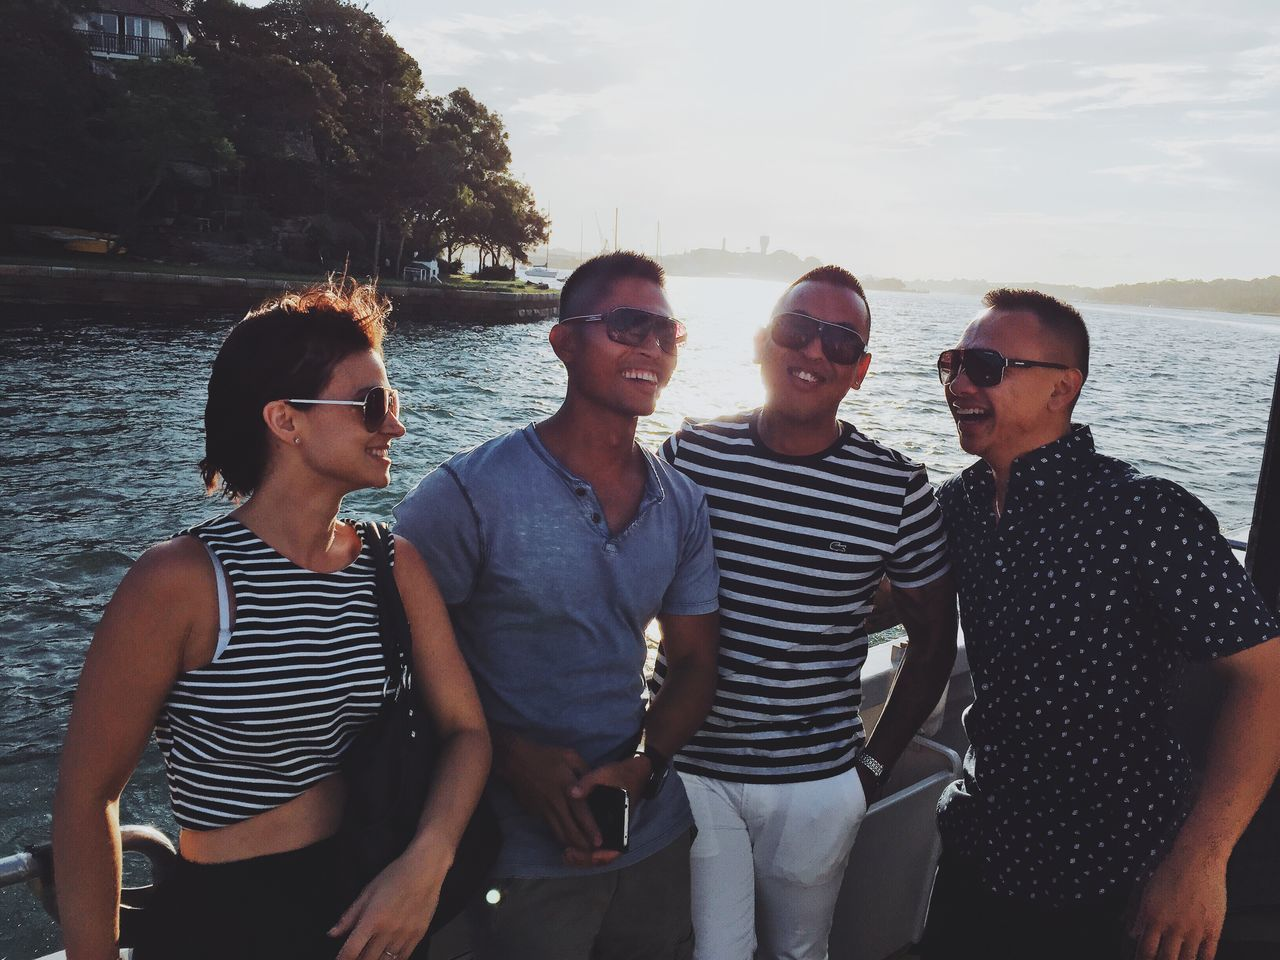 young adult, sunglasses, young men, young women, casual clothing, real people, leisure activity, water, togetherness, outdoors, smiling, lifestyles, transportation, happiness, standing, nautical vessel, bonding, day, sailing, sky, nature, friendship